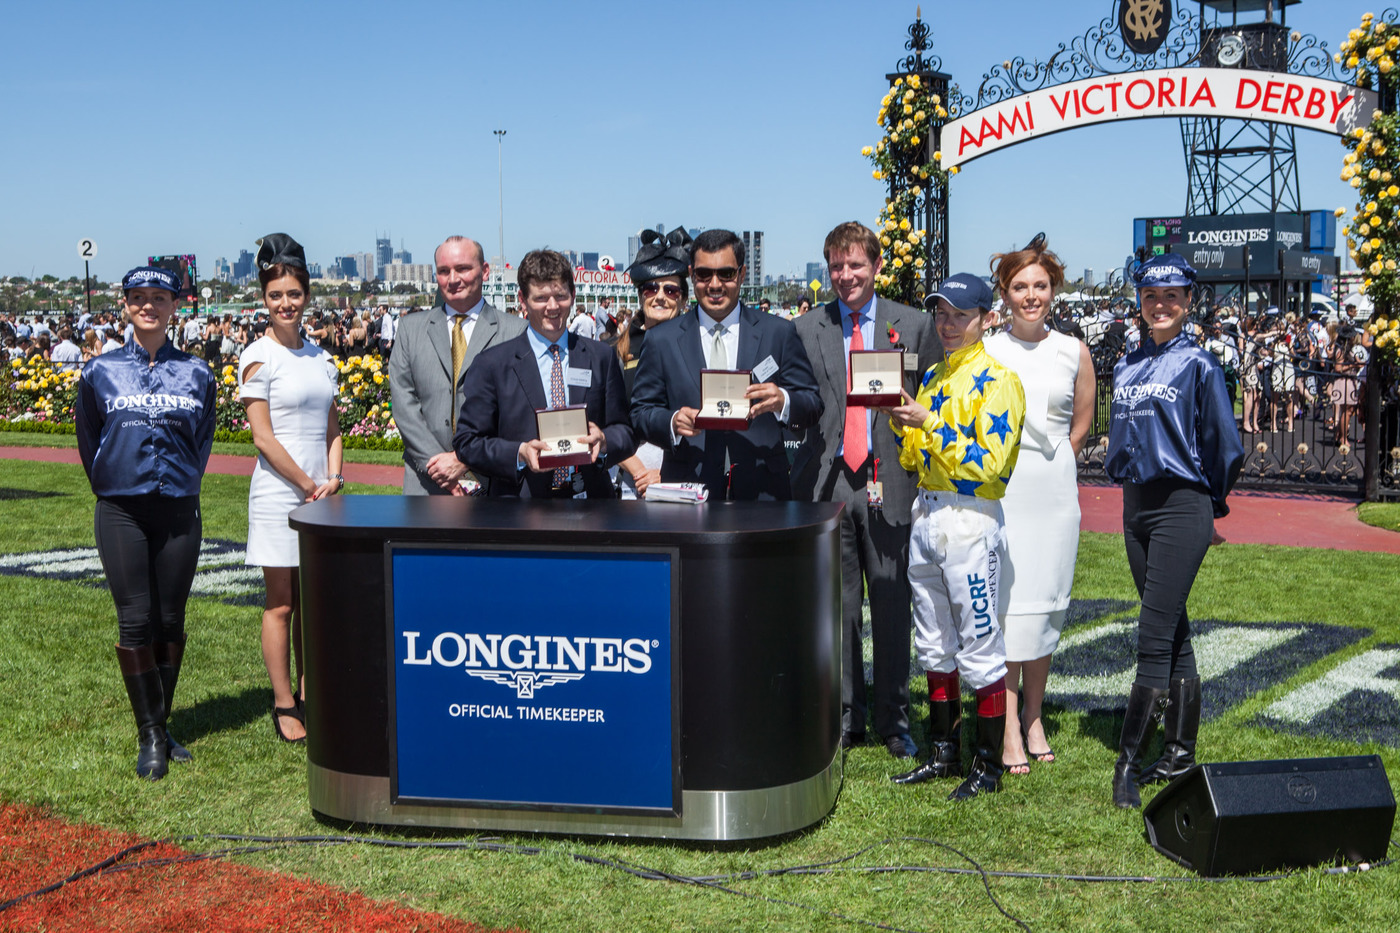 Longines Flat Racing Event: International horse Side Glance and jockey Jamie Spencer win the Longines Mackinnon Stakes for Sheik Fahad Al Thani 2